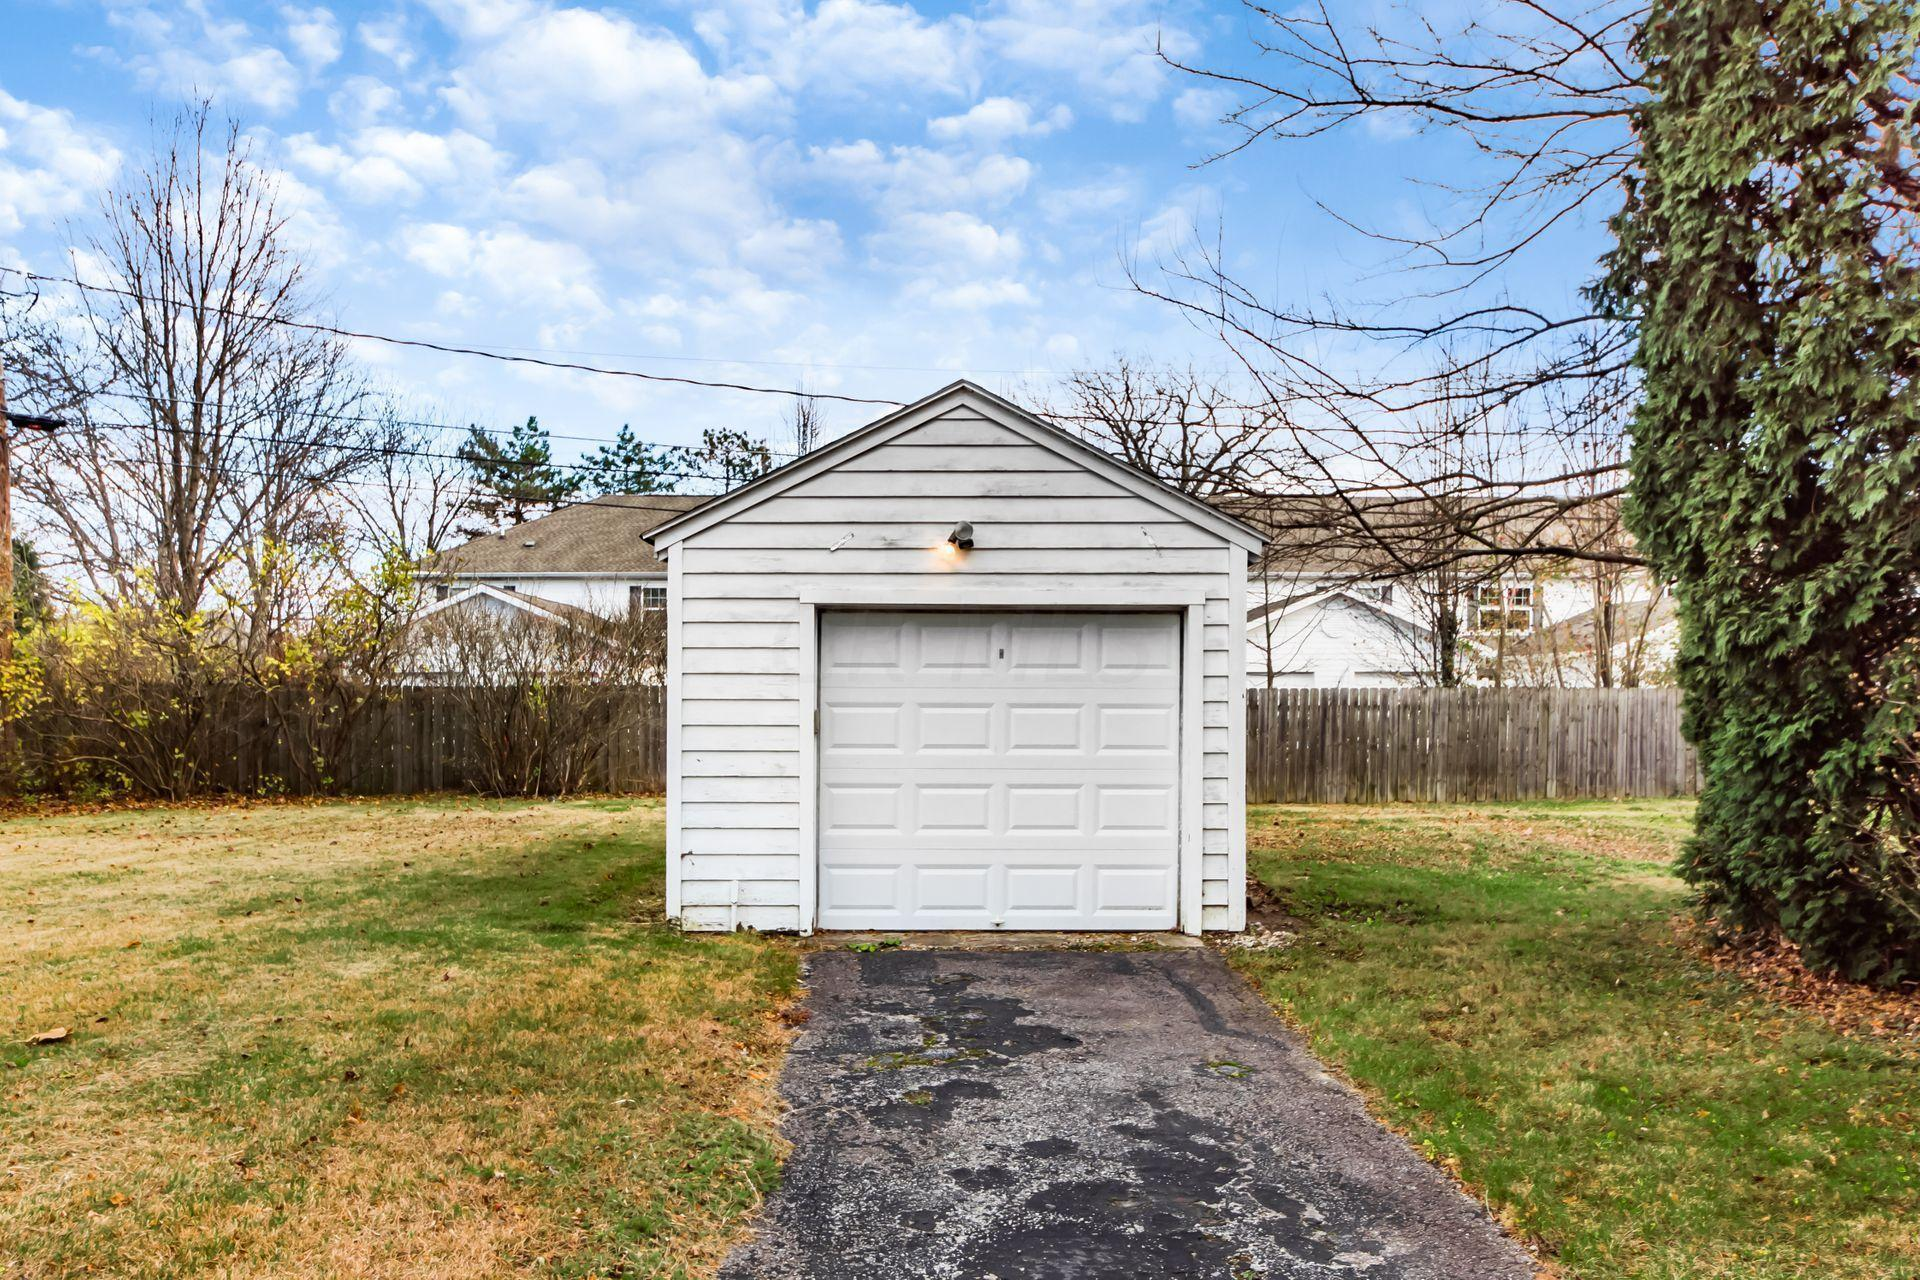 840 Griswold Street, Worthington, Ohio 43085, 3 Bedrooms Bedrooms, ,1 BathroomBathrooms,Residential,For Sale,Griswold,220040668